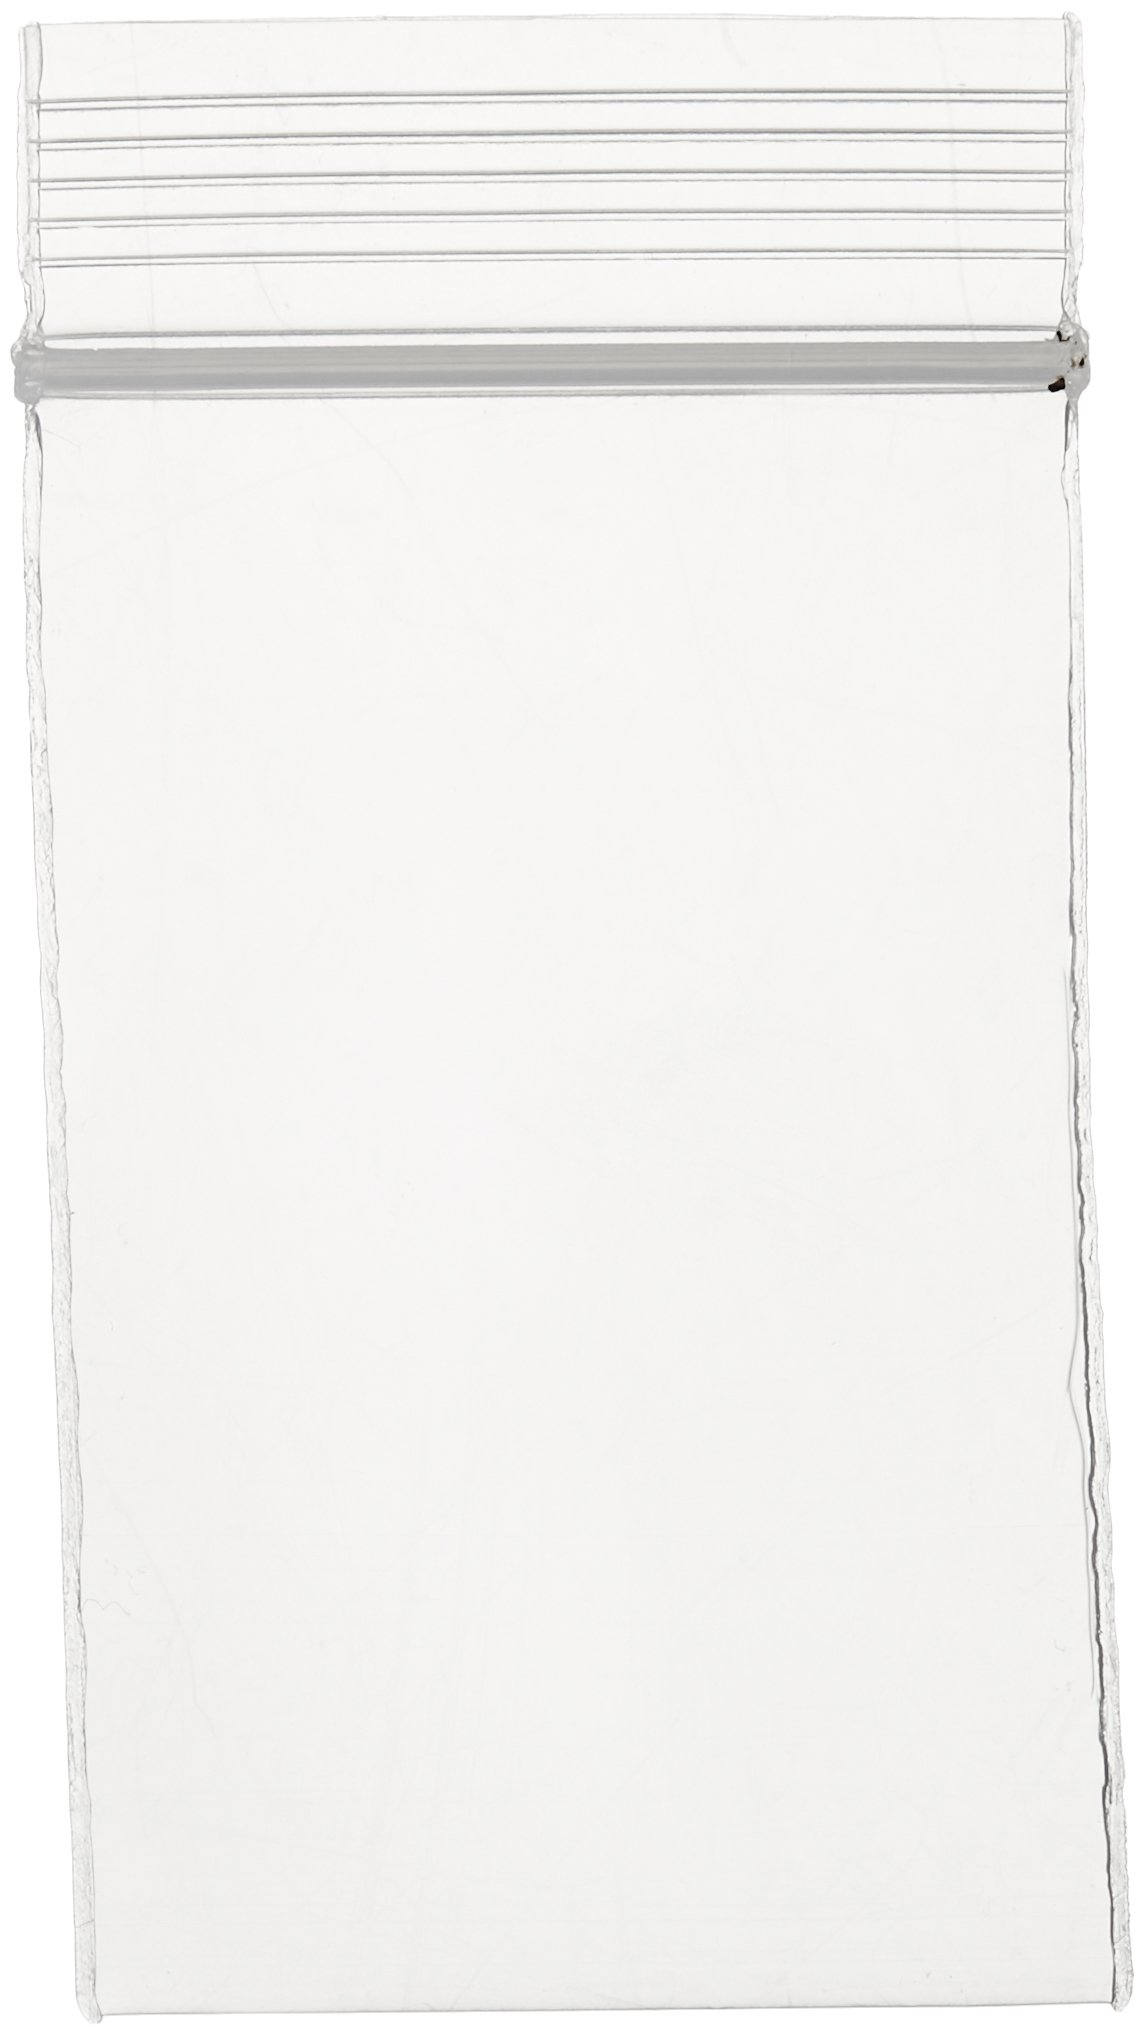 Clear 4 Mil 2'' x 3'' Resealable Poly Bags - 1000-Pack